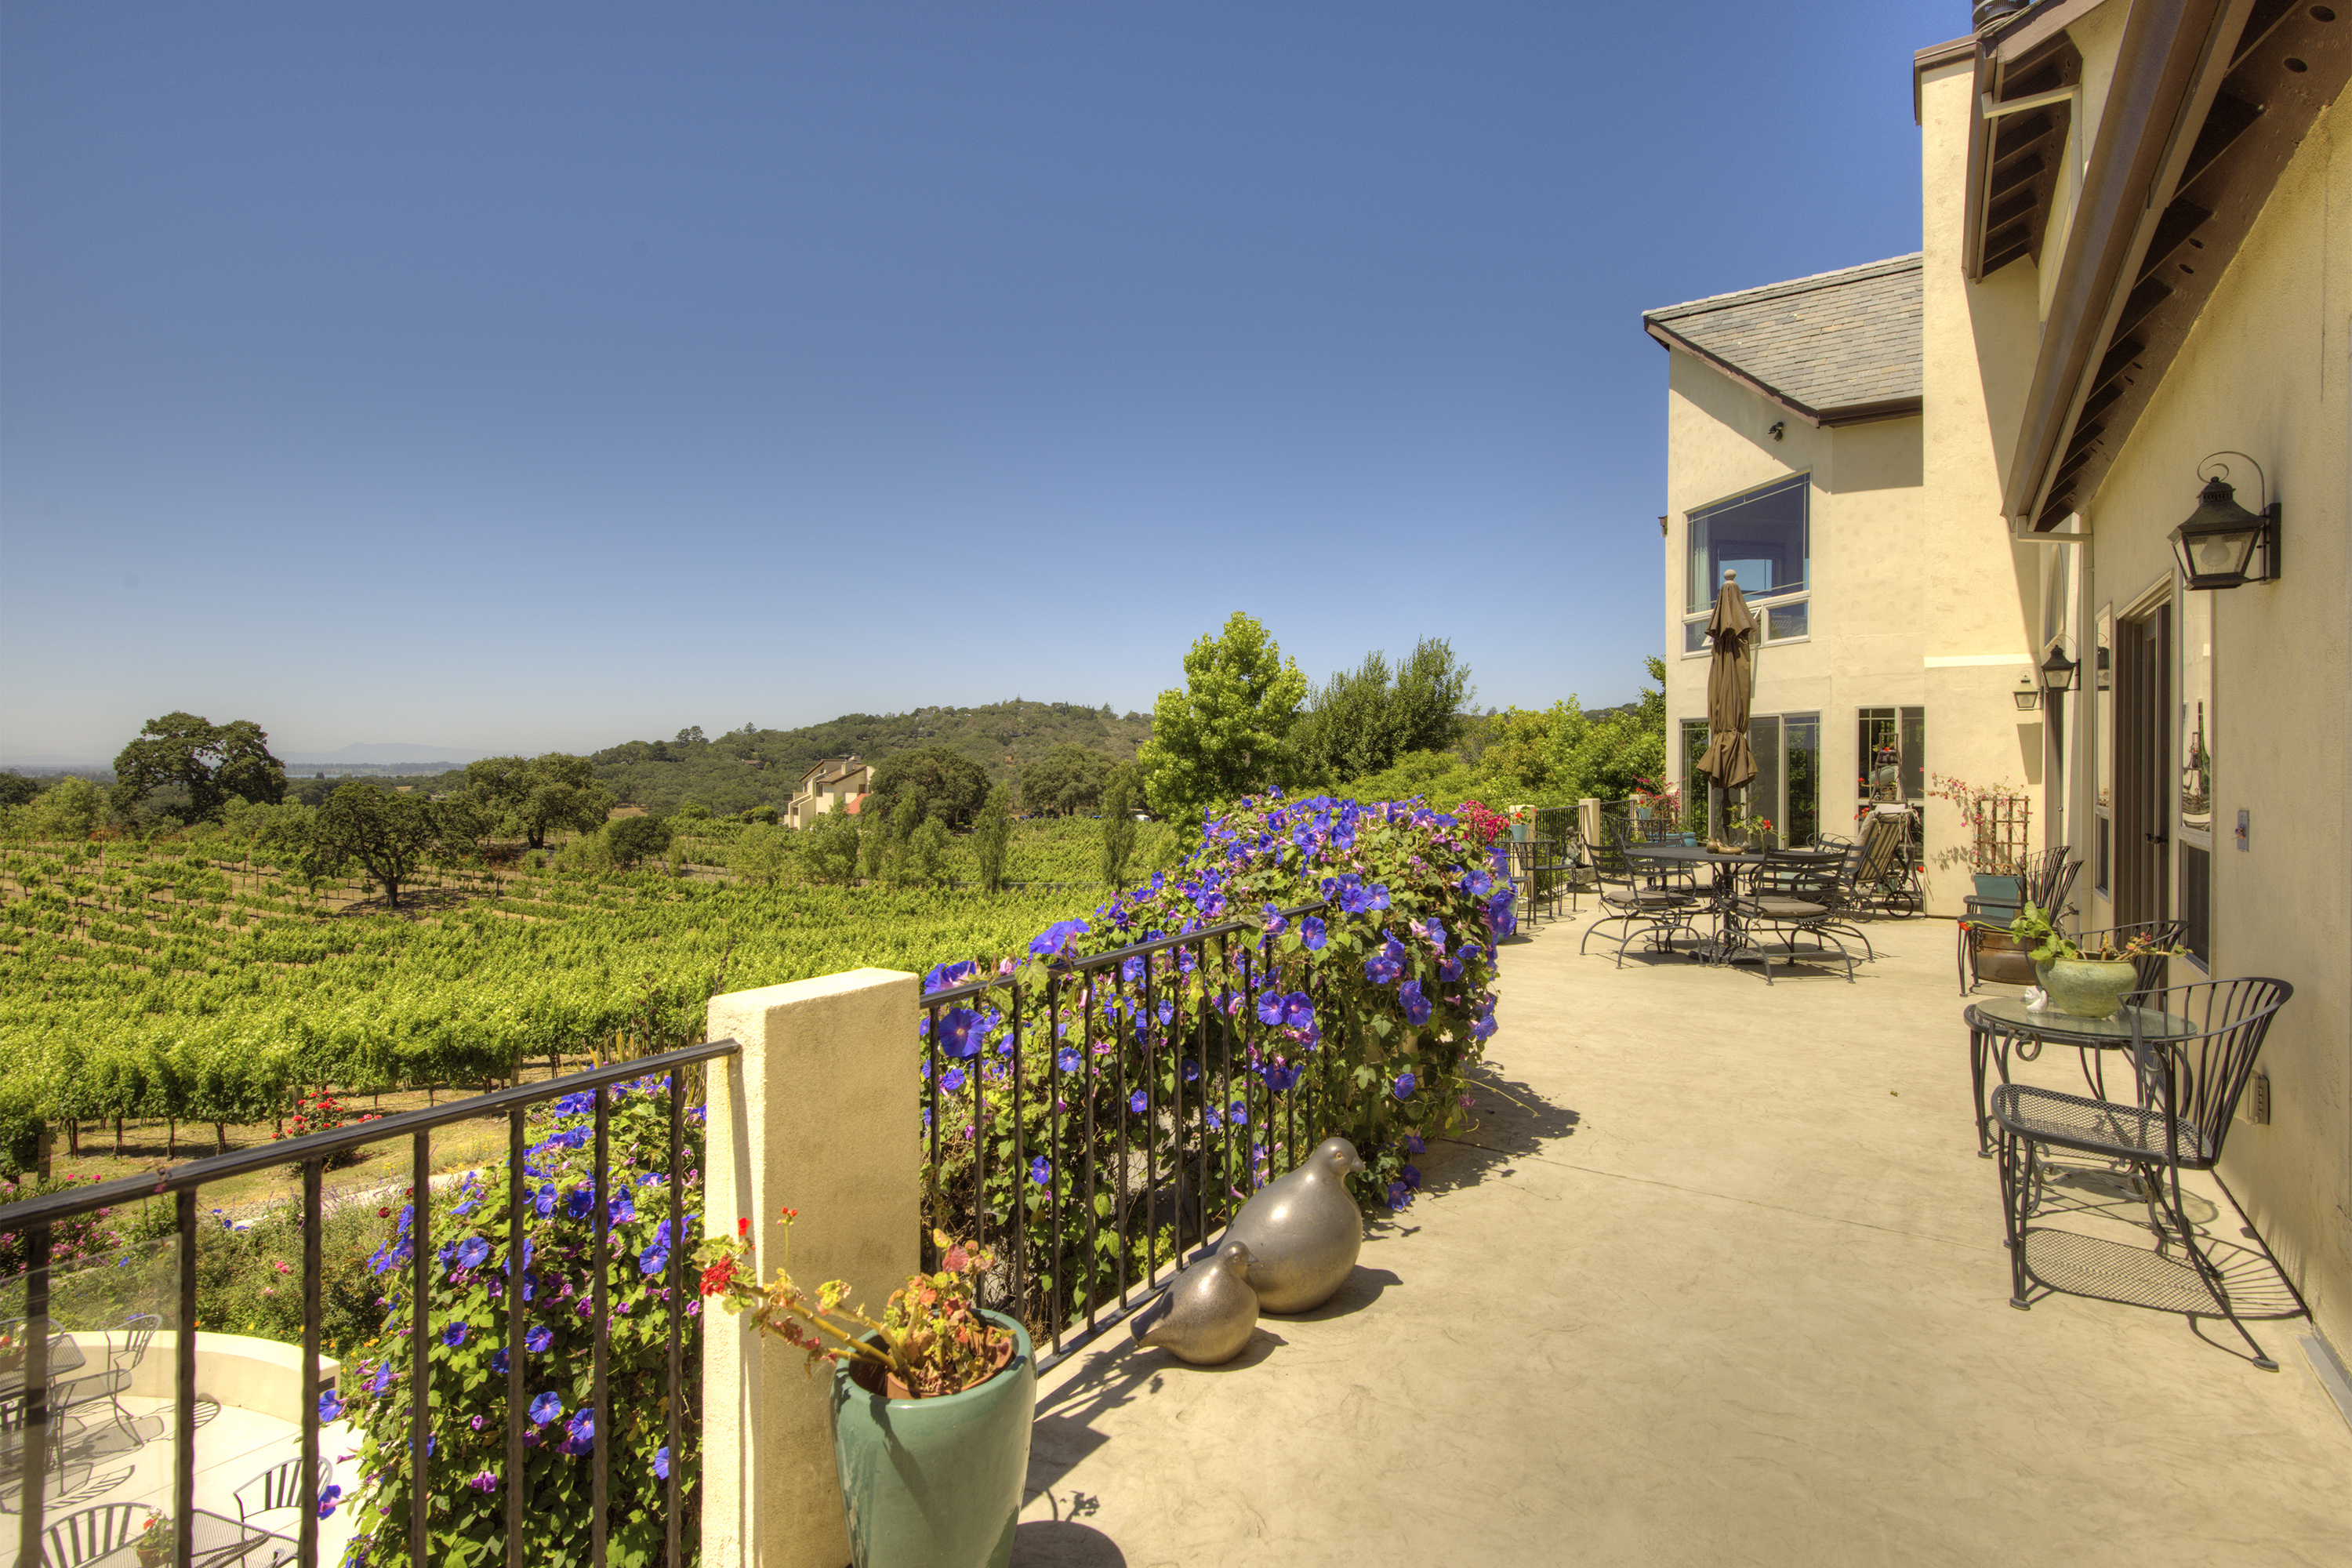 Casa Unifamiliar por un Venta en Quail Knoll Vineyards 21 Palm Drive Napa, California, 94558 Estados Unidos